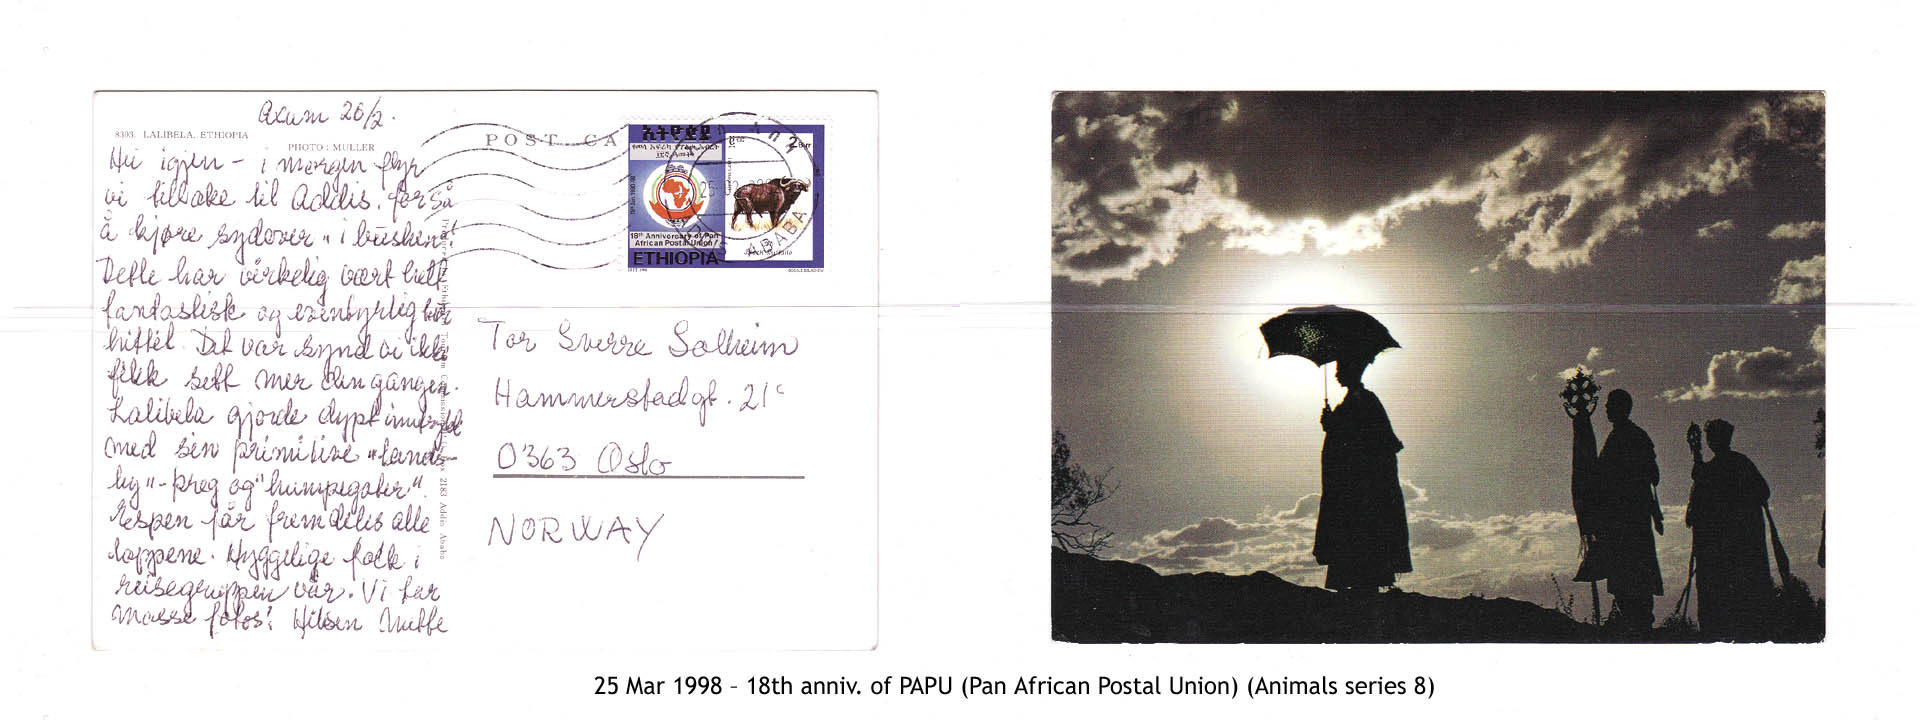 19980325 – 18th anniv. of PAPU (Pan African Postal Union) (Animals series 8)